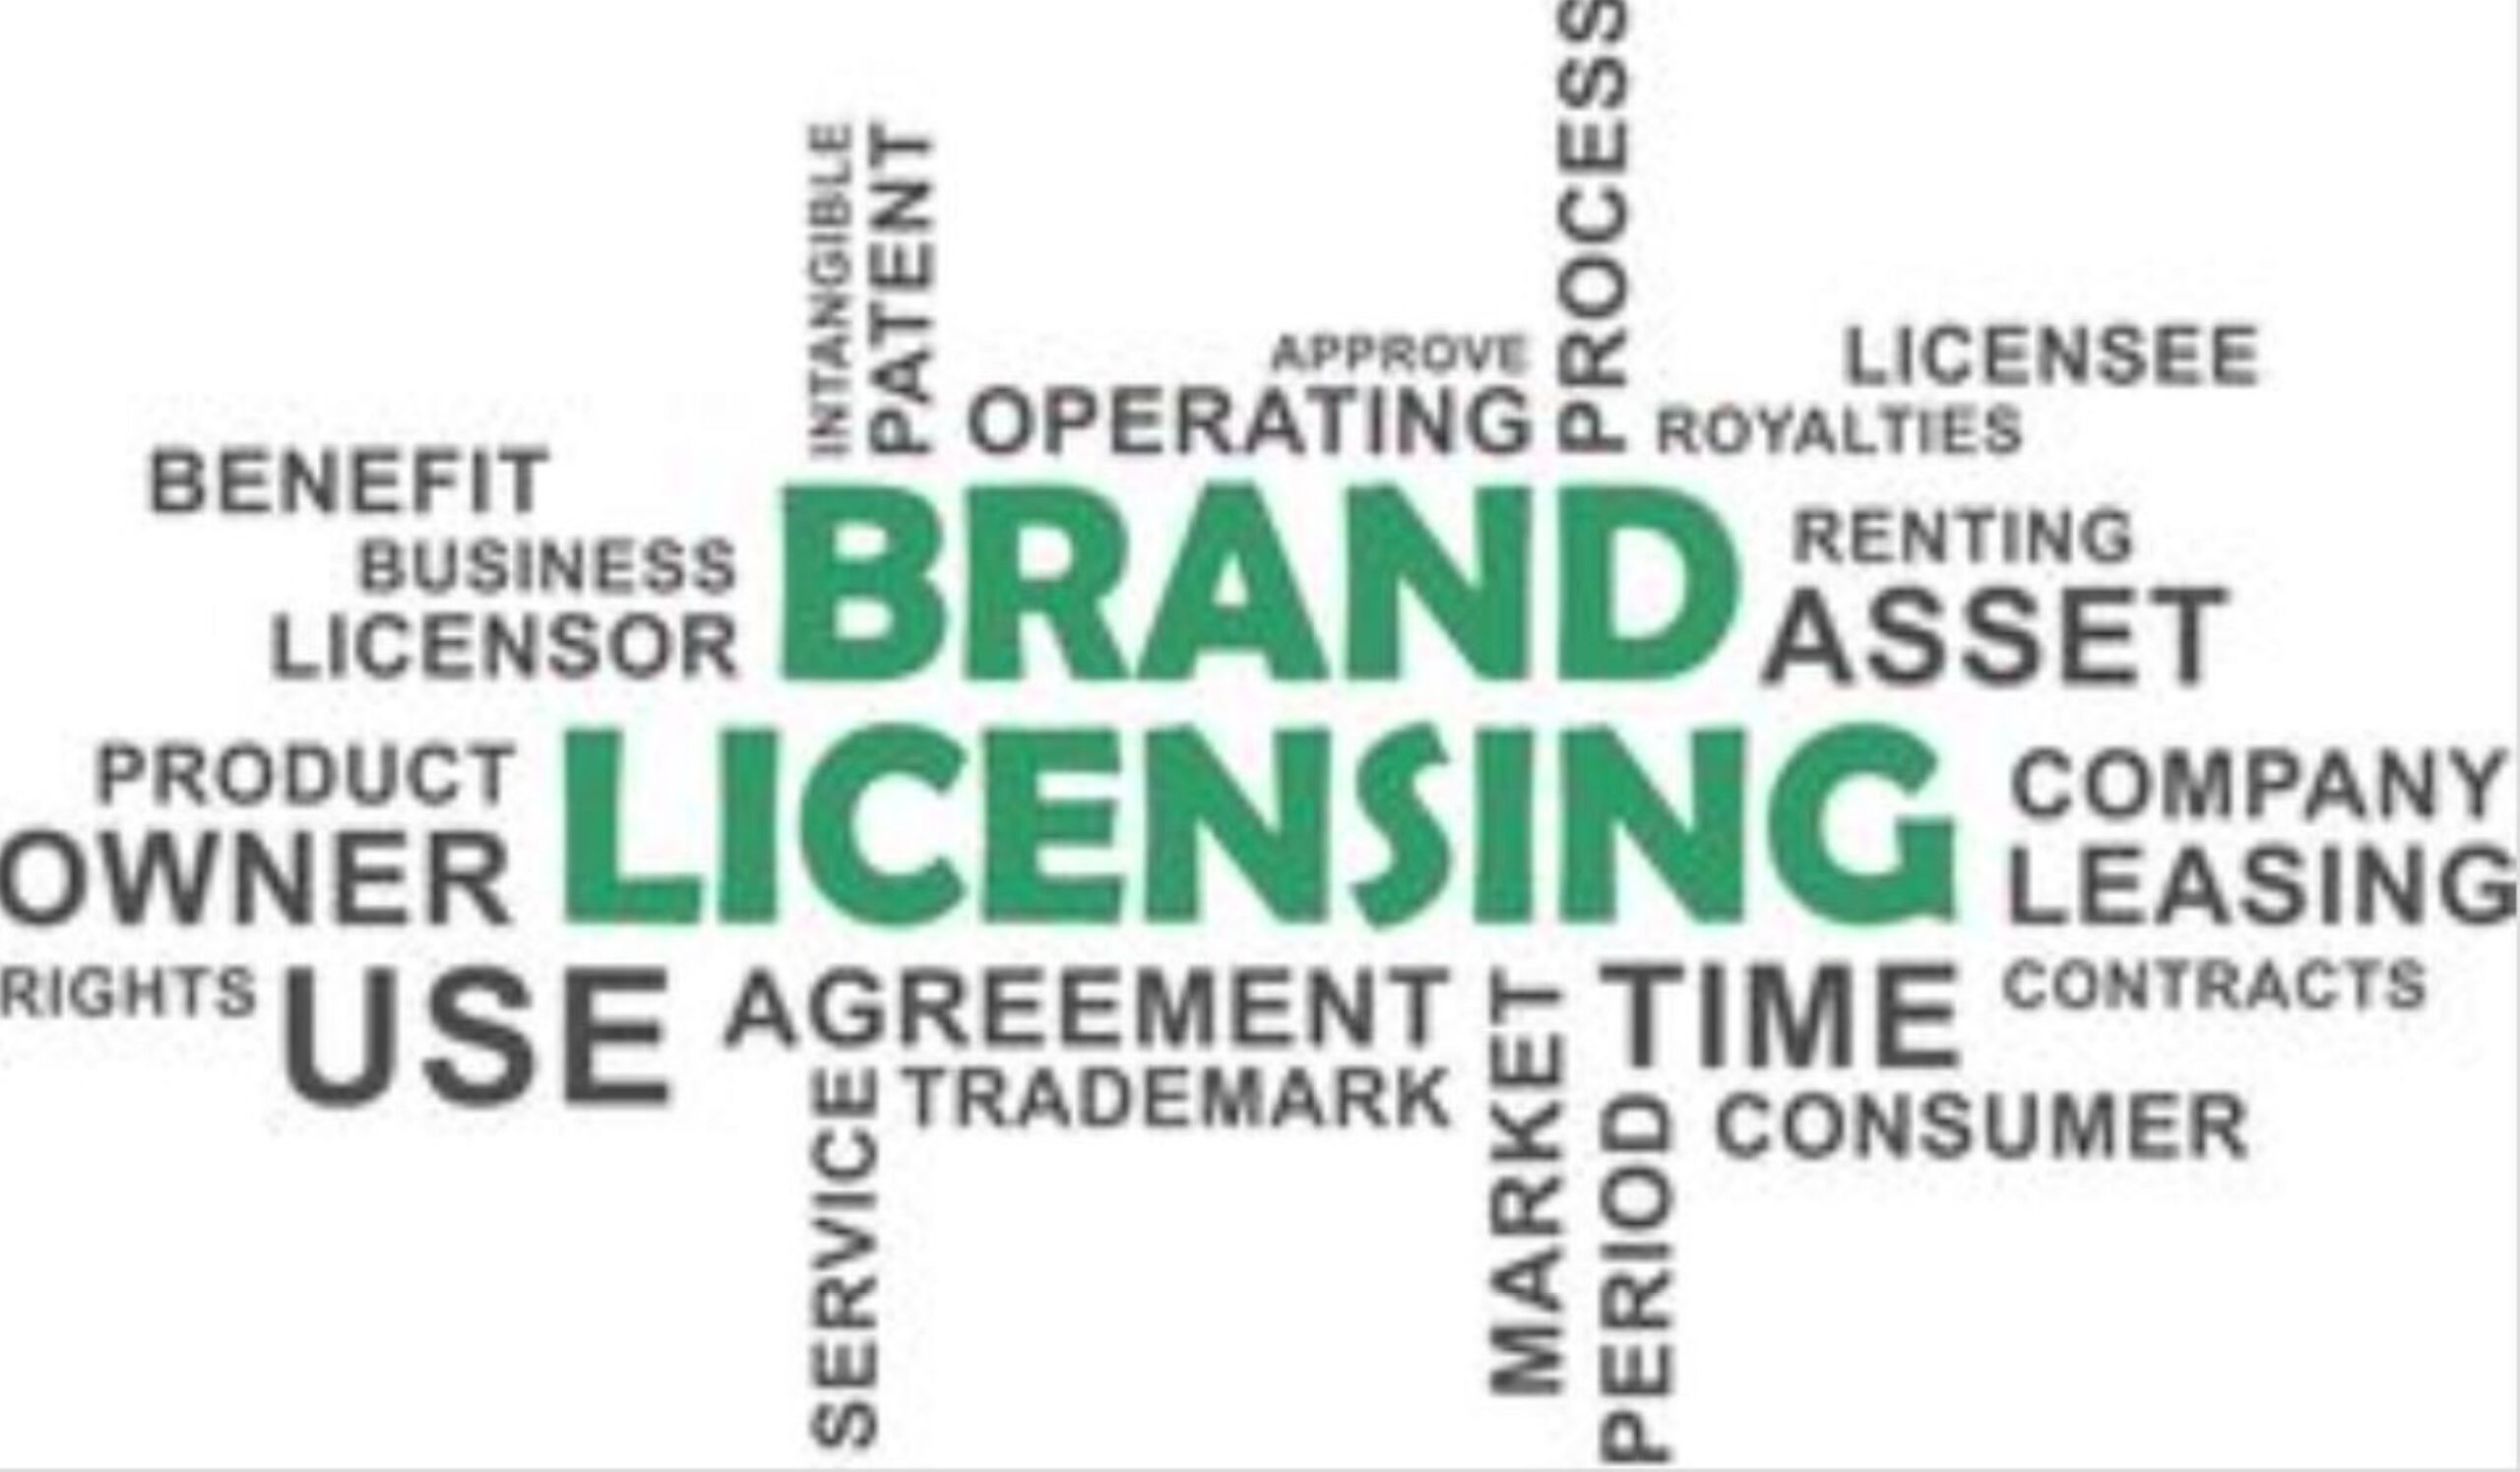 Property Licensing vs Product Licensing – Which Type is For Inventors?